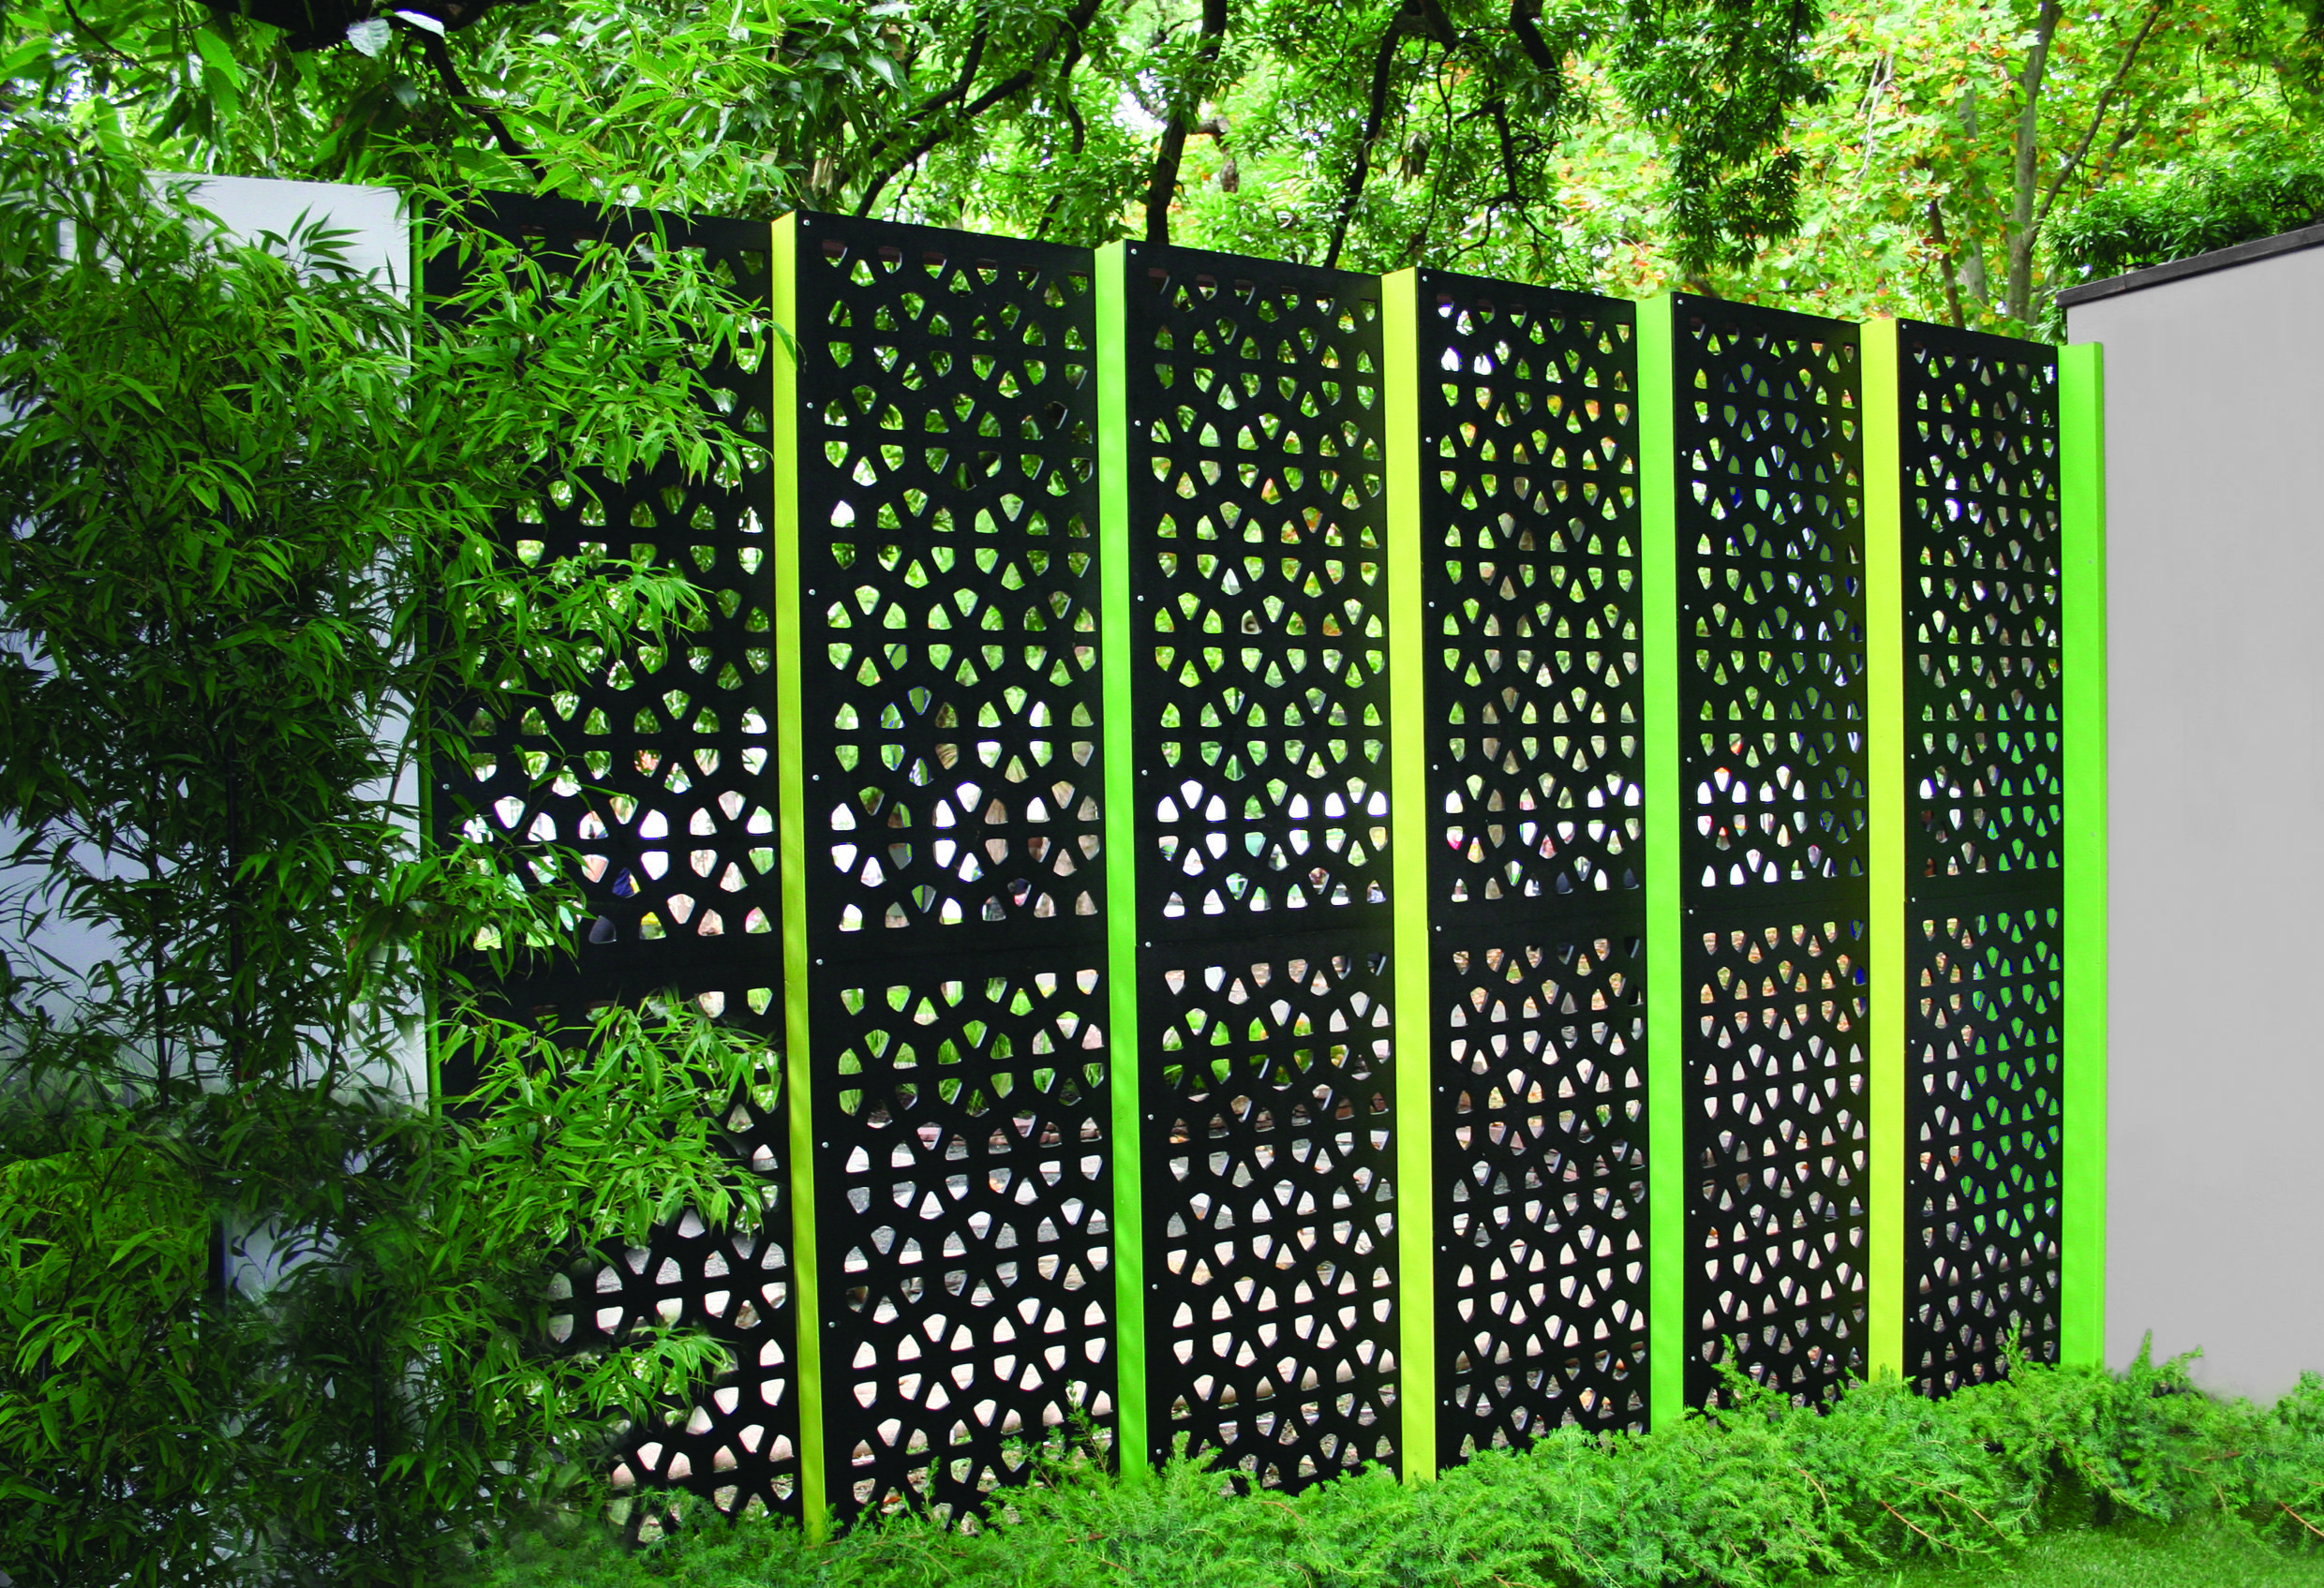 Backyard privacy screens decorative metal outdoor privacy for Privacy screen ideas for backyard